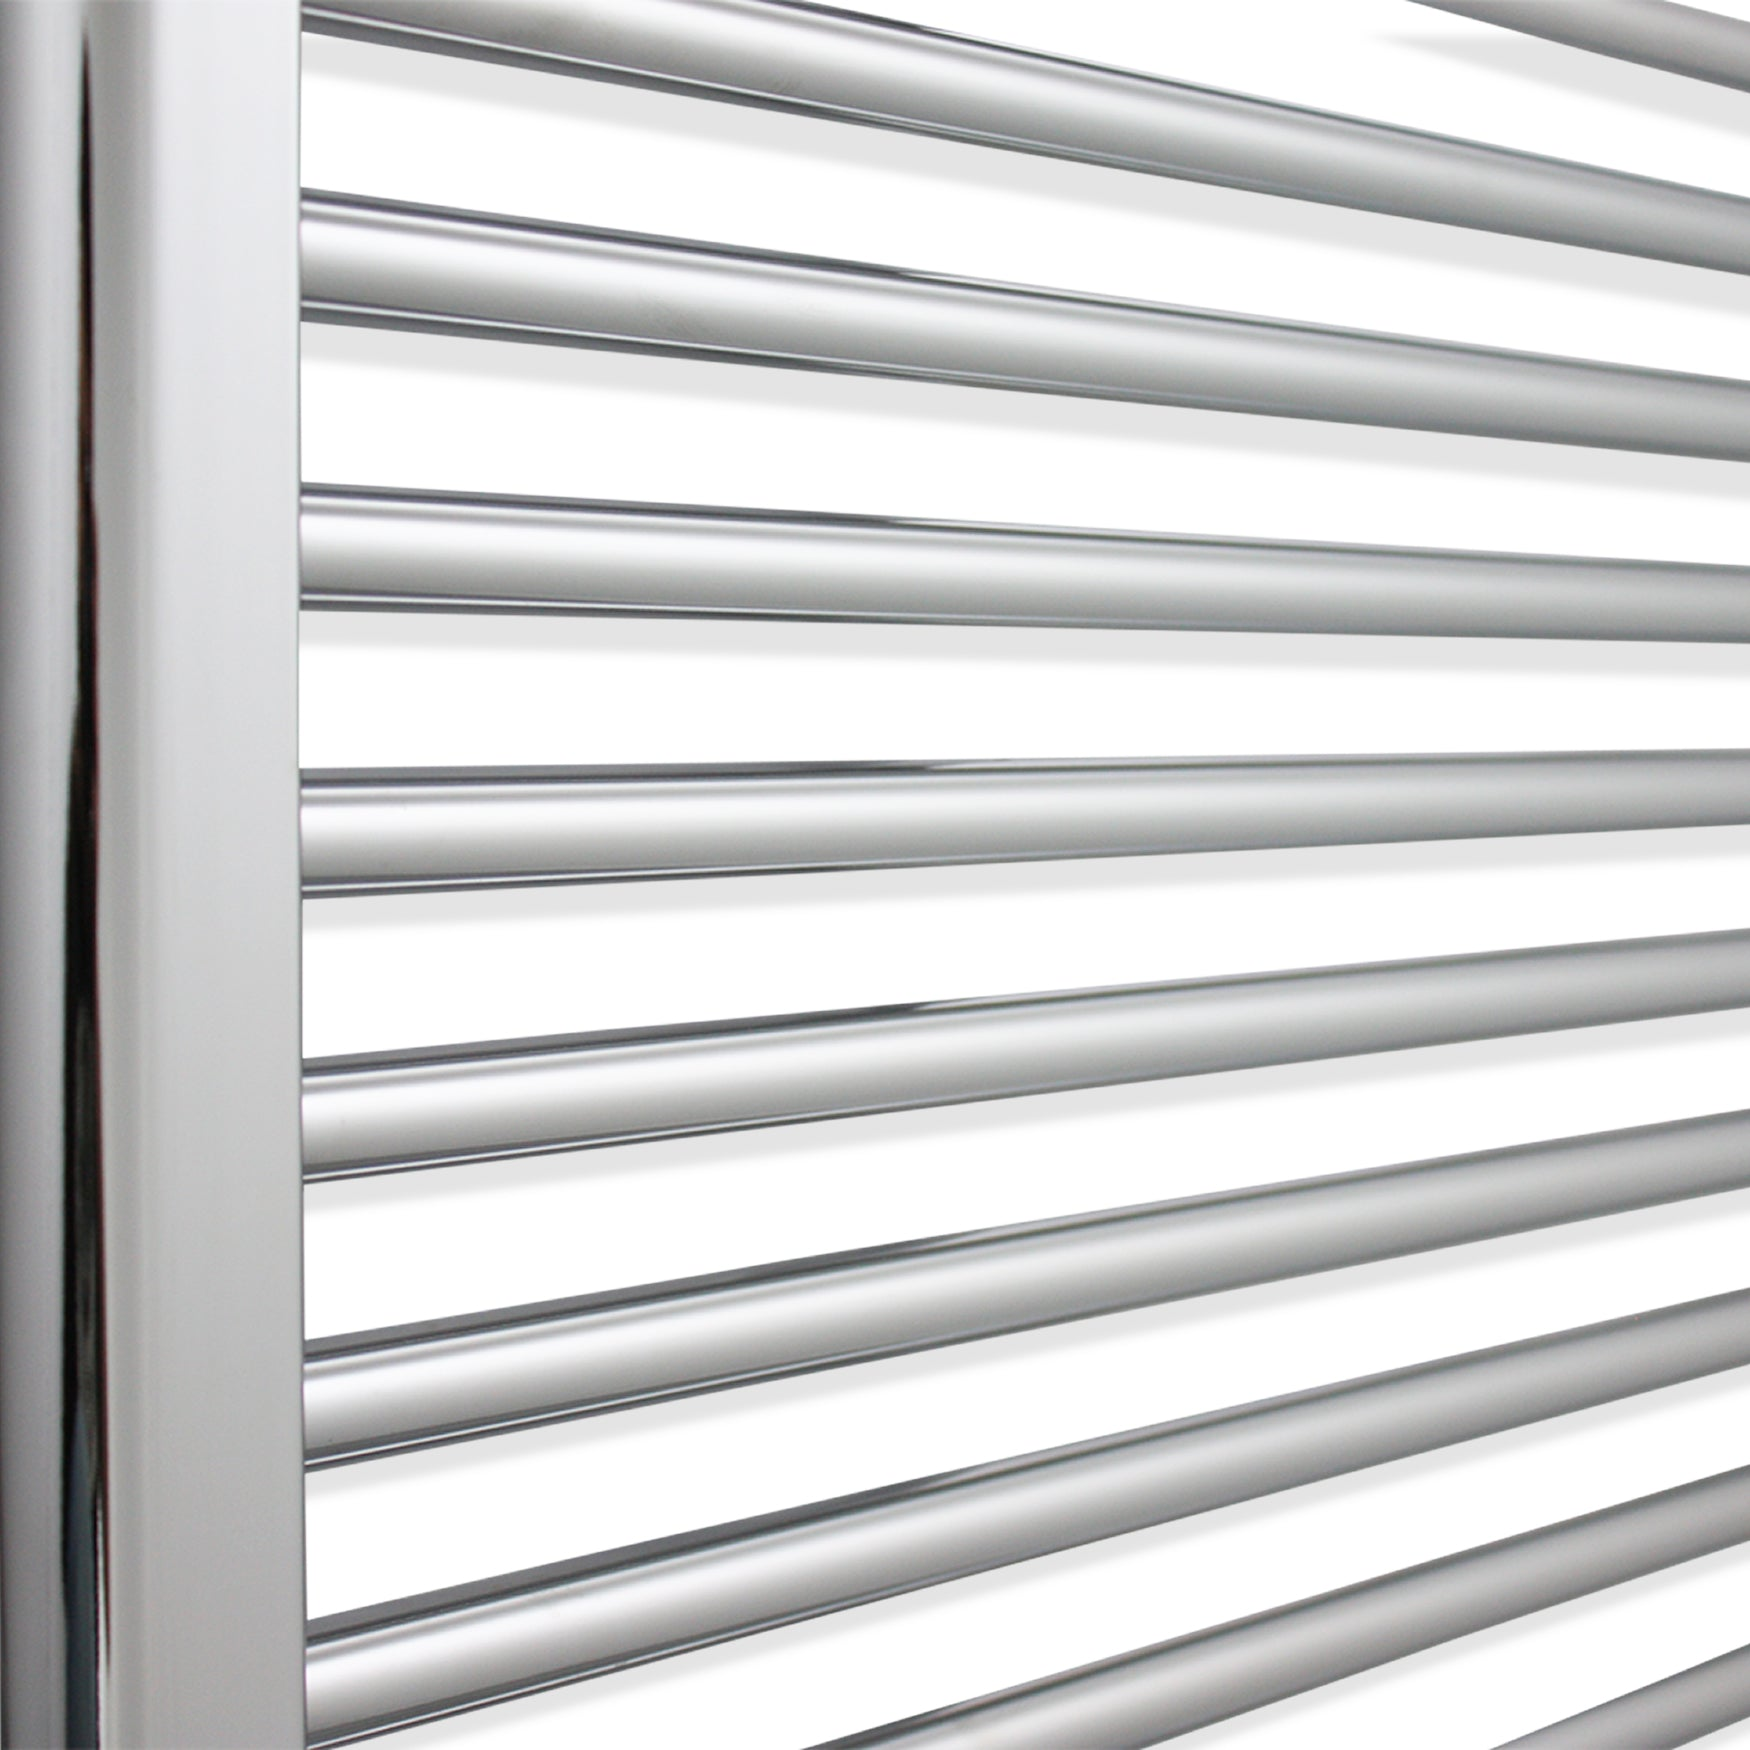 950mm Wide 600mm High Flat Chrome Heated Towel Rail Radiator HTR